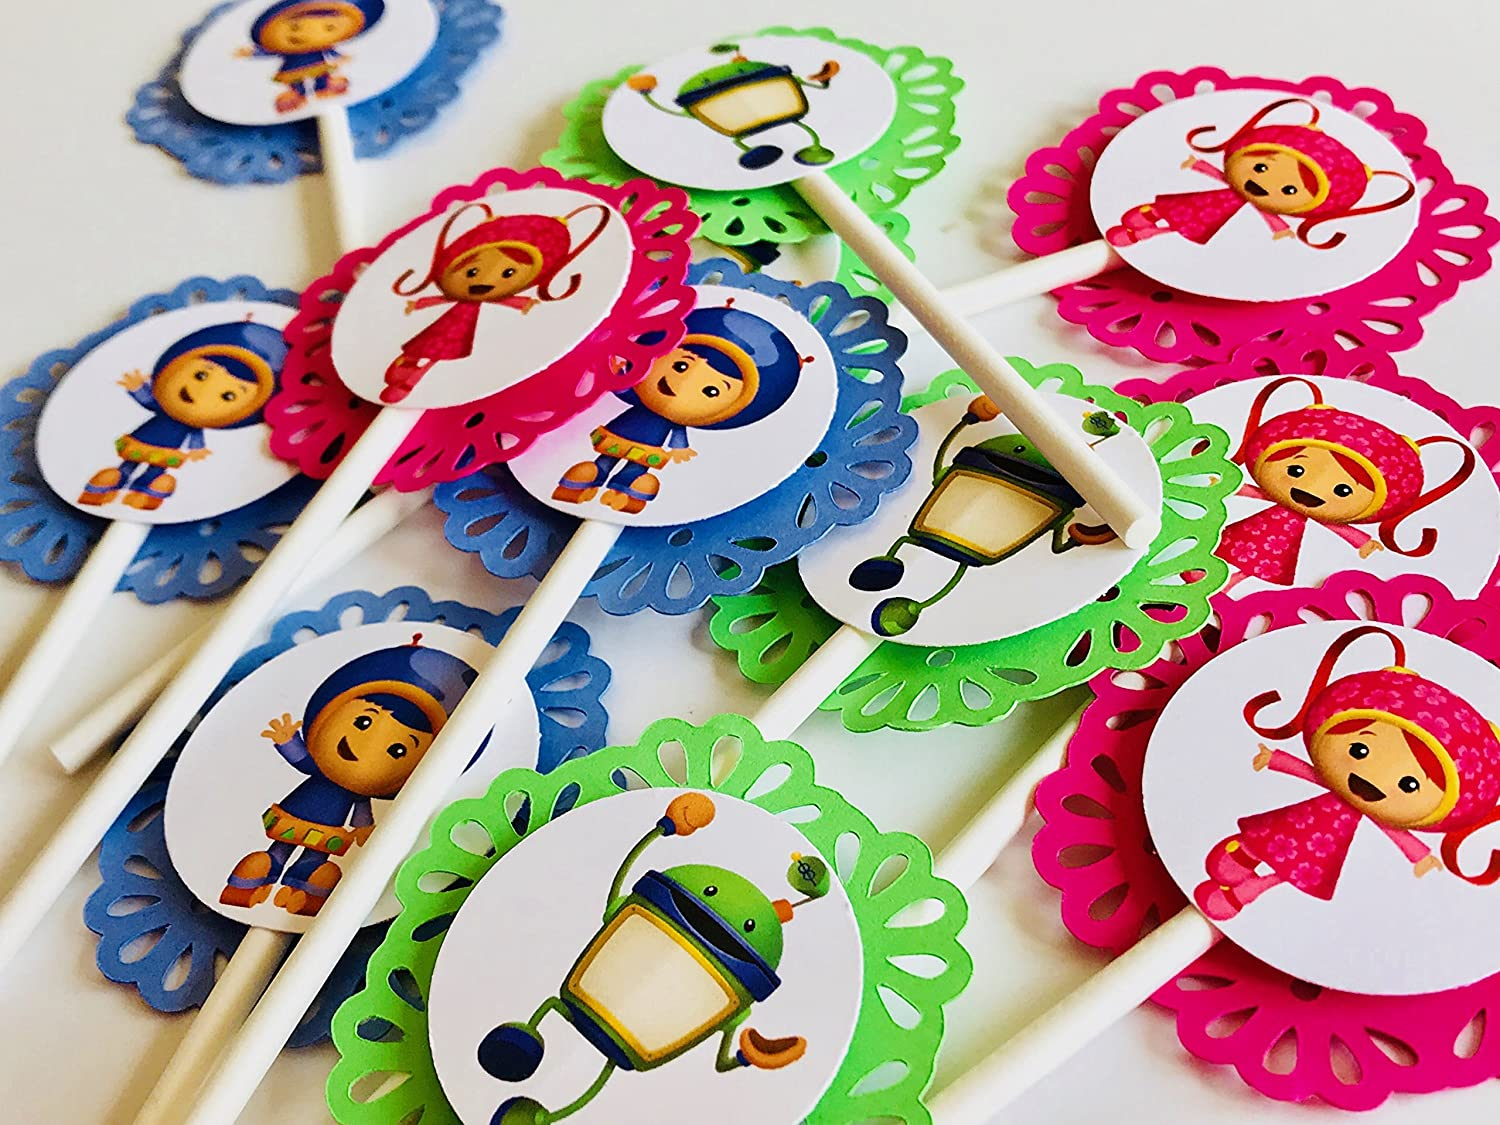 Swell 12 Team Umizoomi Cupcake Toppers Geo Nickelodeon Party Picks Bot Milly Personalised Birthday Cards Epsylily Jamesorg